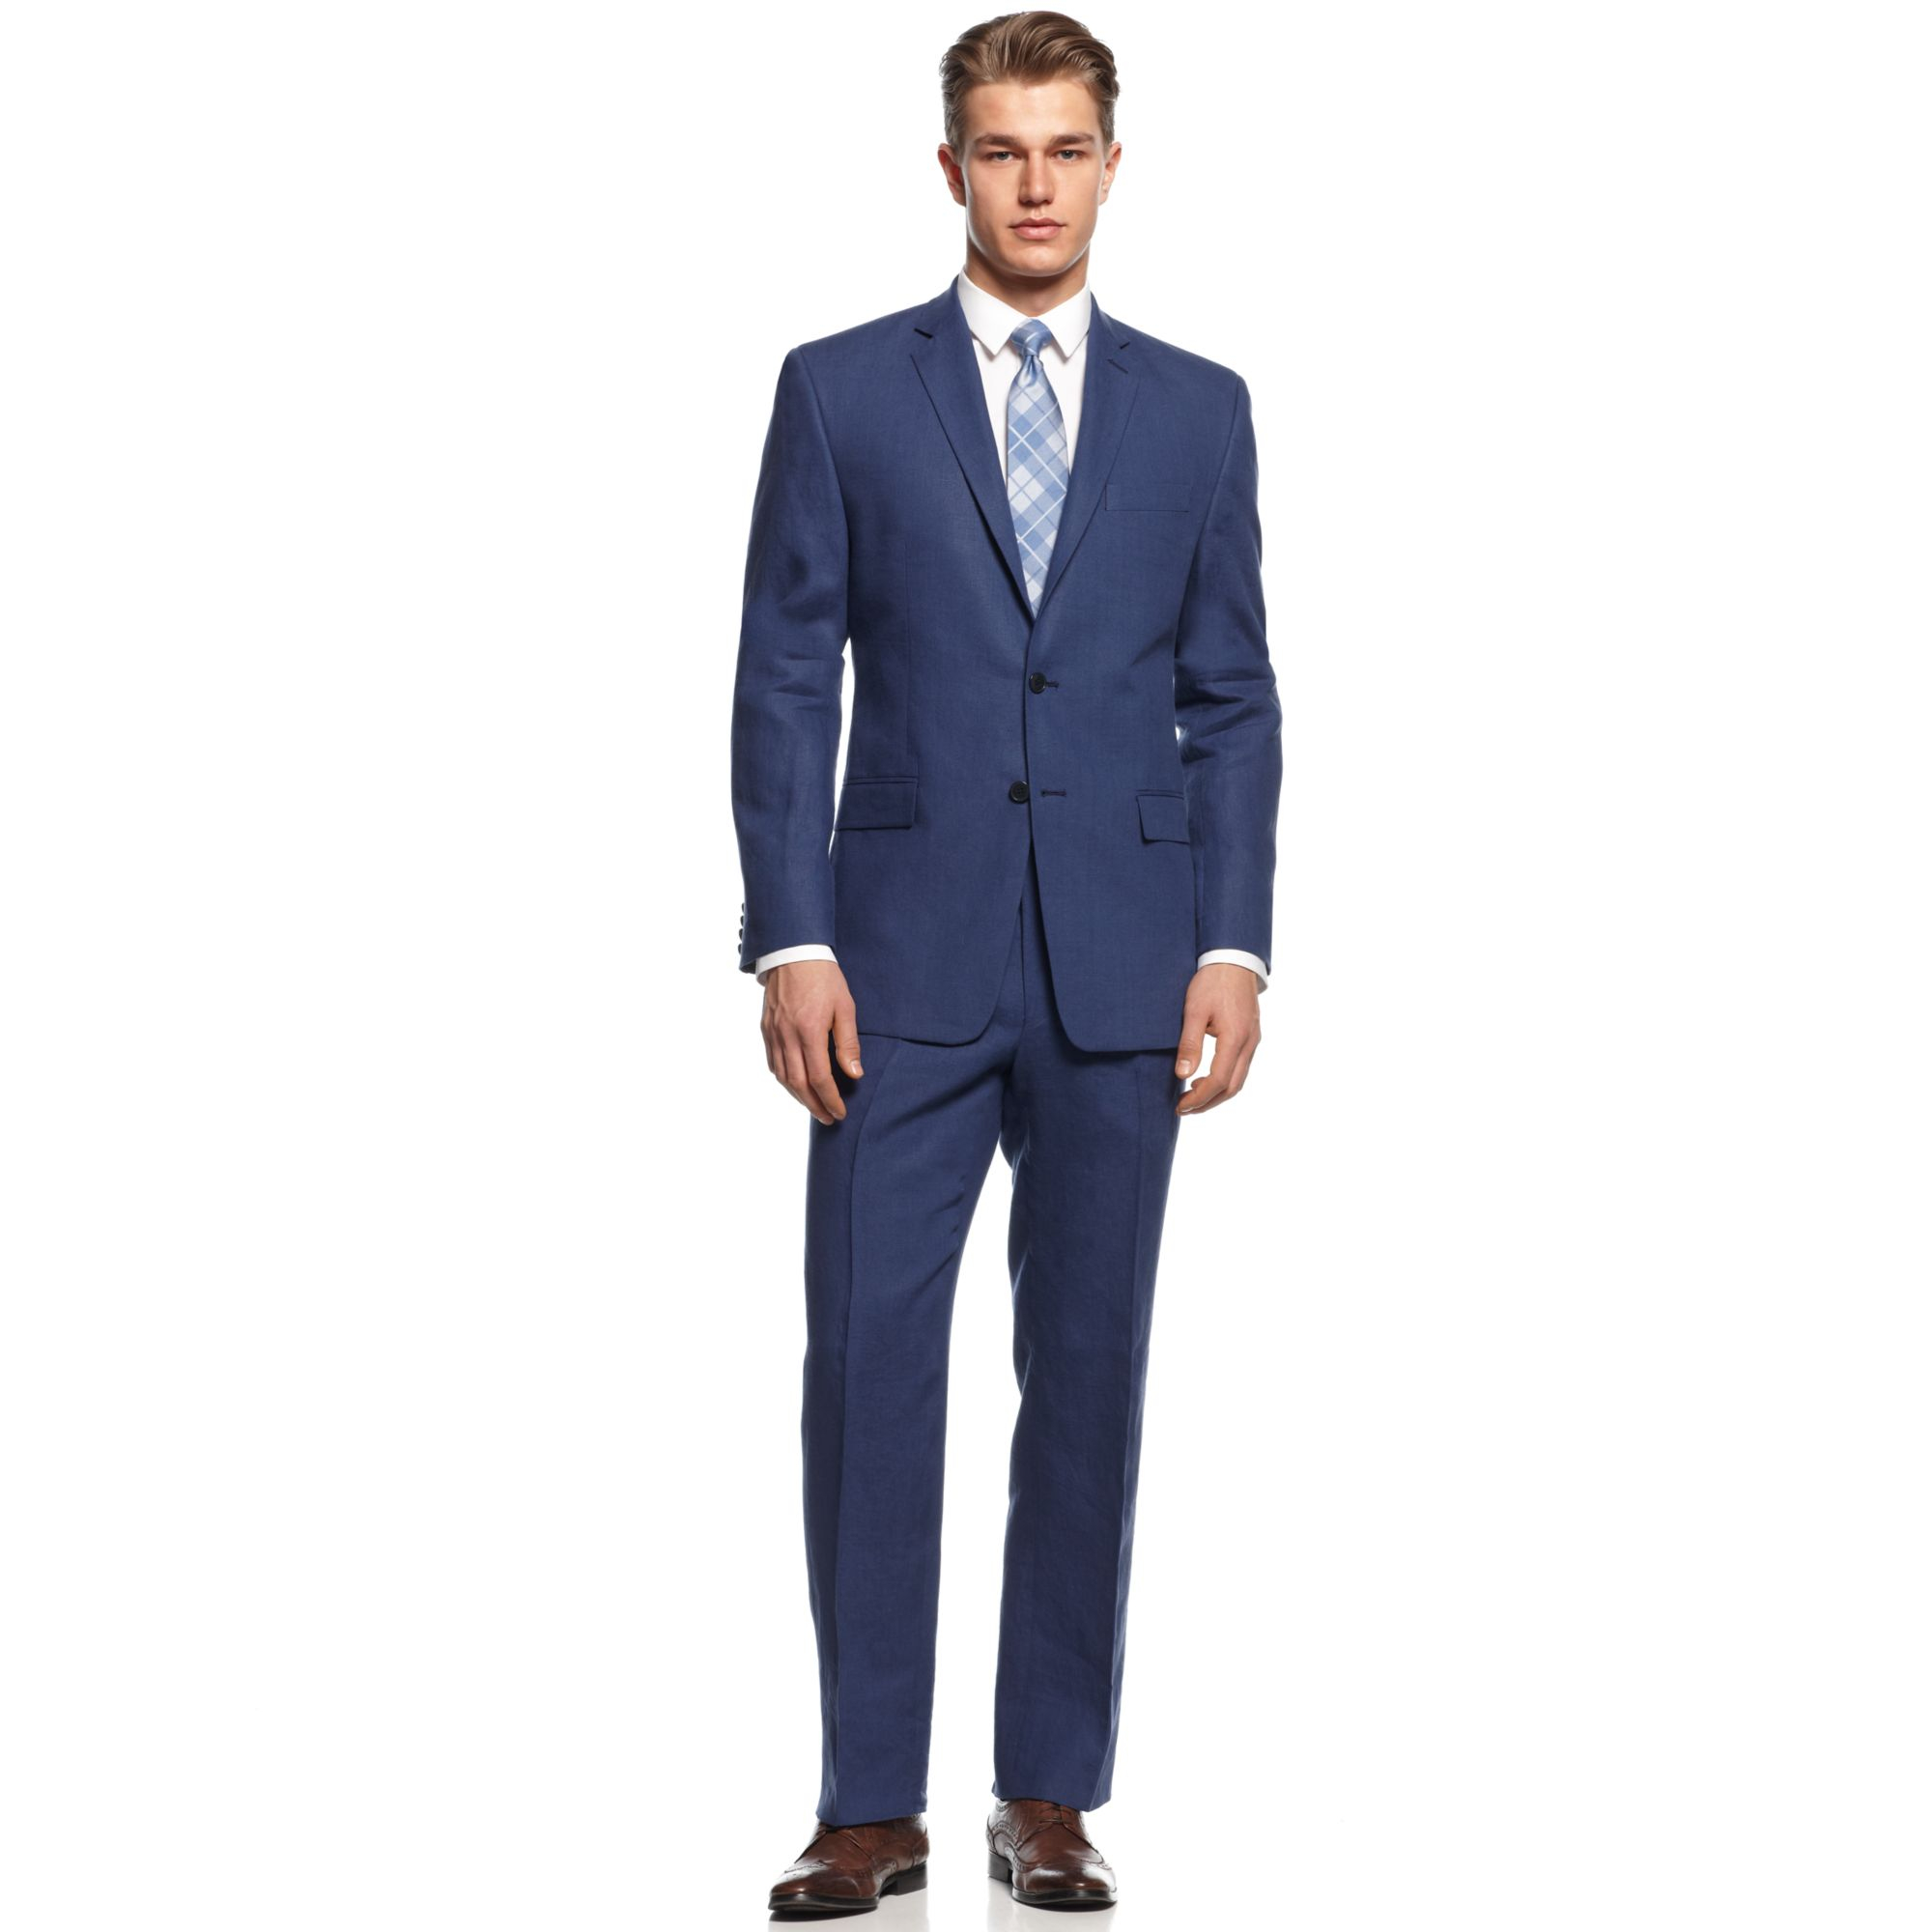 Calvin Klein Suit Blue Linen Slim Fit Big And Tall In Blue